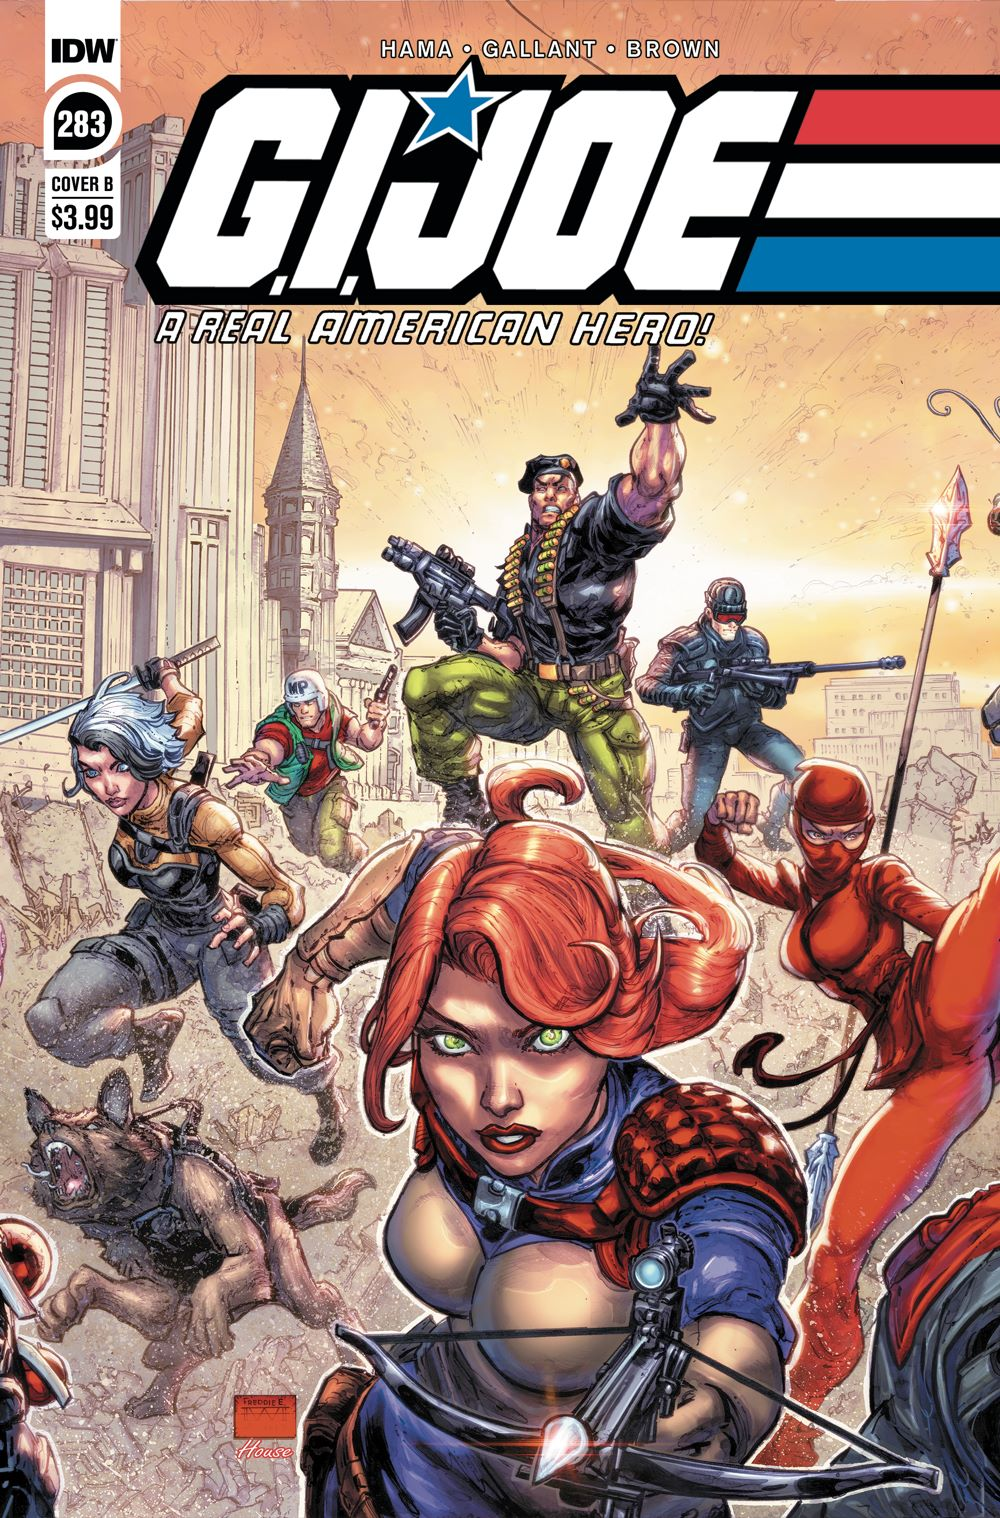 GIJoeRAH283-coverB ComicList: IDW Publishing New Releases for 06/16/2021